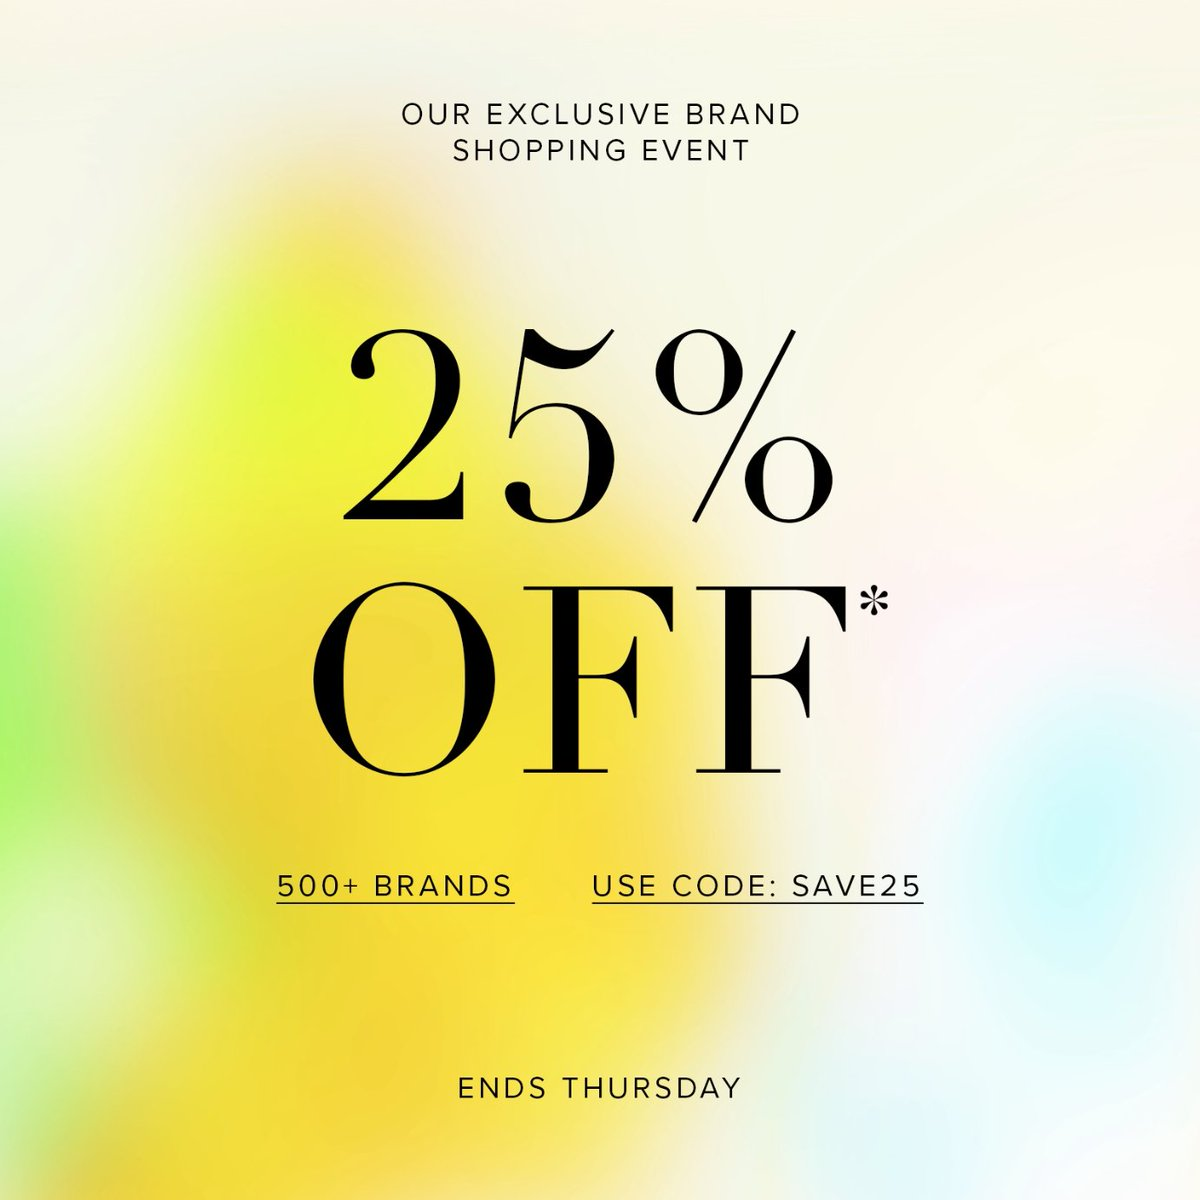 OUR BIGGEST BRAND EVENT: 25% OFF* 🛍 Use code '25OFF' at checkout. Ends Thurs.  Shop Sale > https://t.co/YGgcuwuEj2 *Ends 11:59PM AEDT on 25.10.18. Selected styles and colours listed. #THEICONICsale #onlineshopping https://t.co/T7DZVAdxya